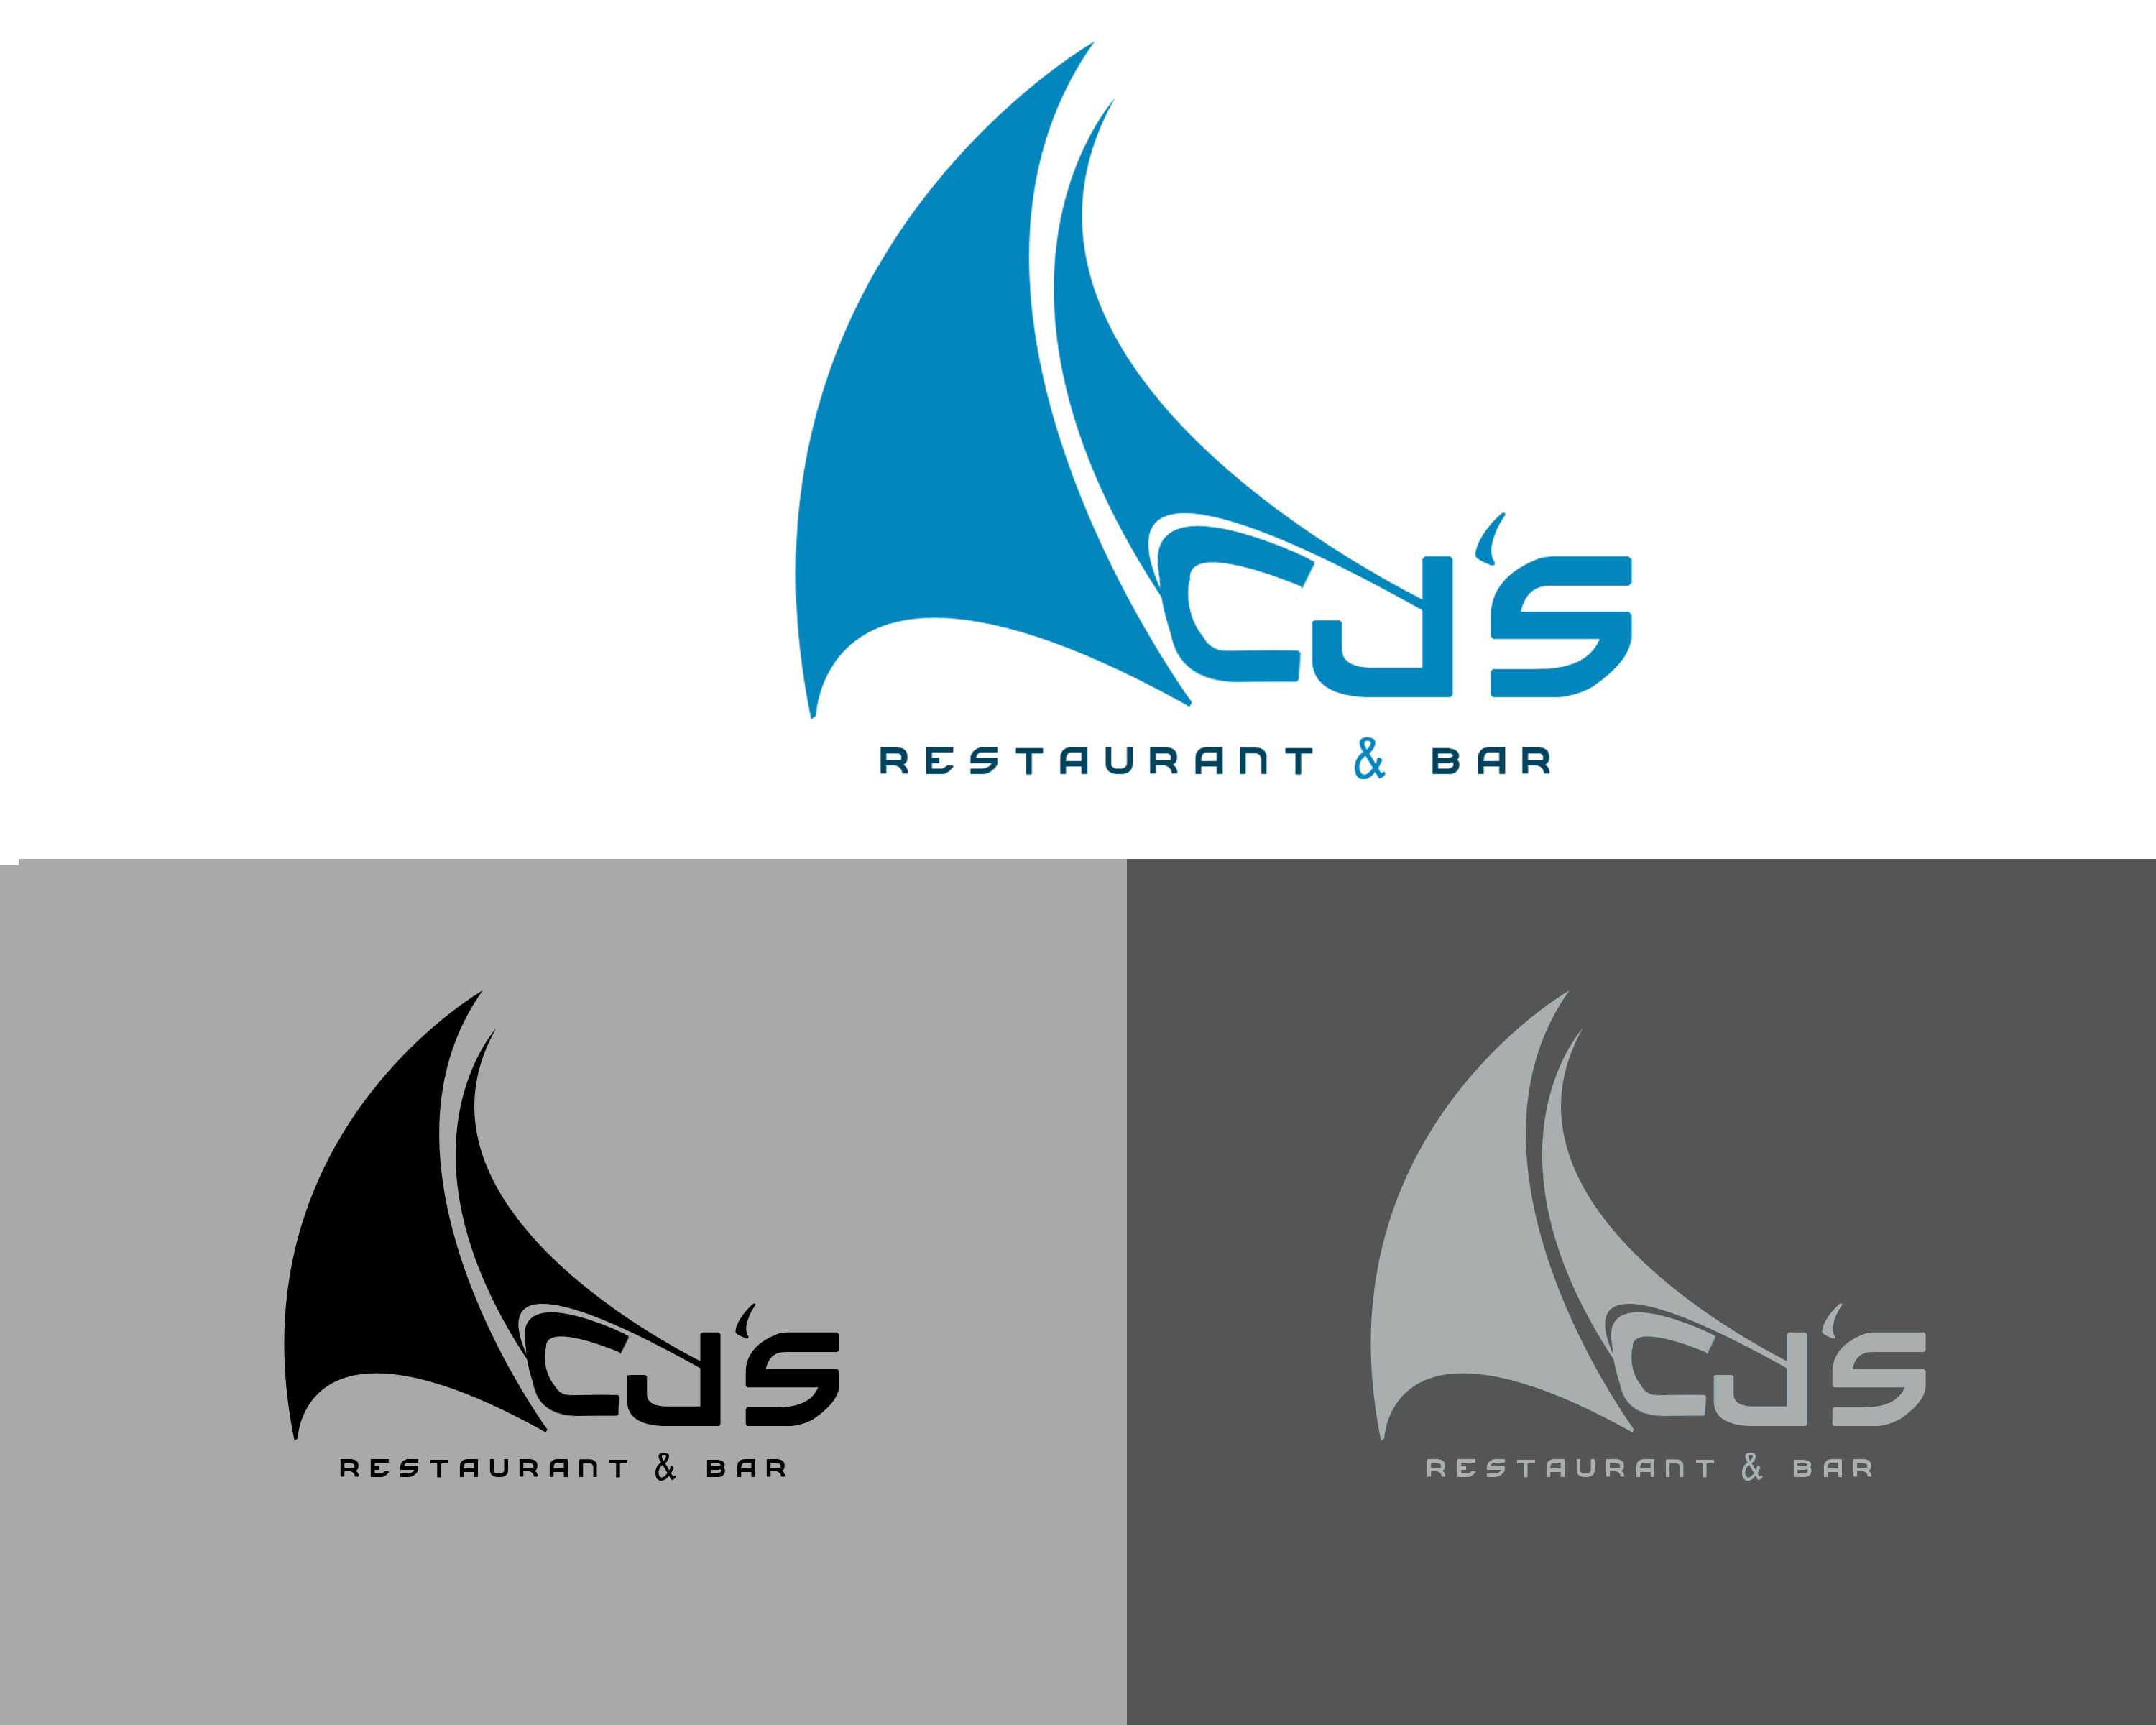 Logo Design by Jack Rajgor - Entry No. 68 in the Logo Design Contest Inspiring Logo Design for Cj's.